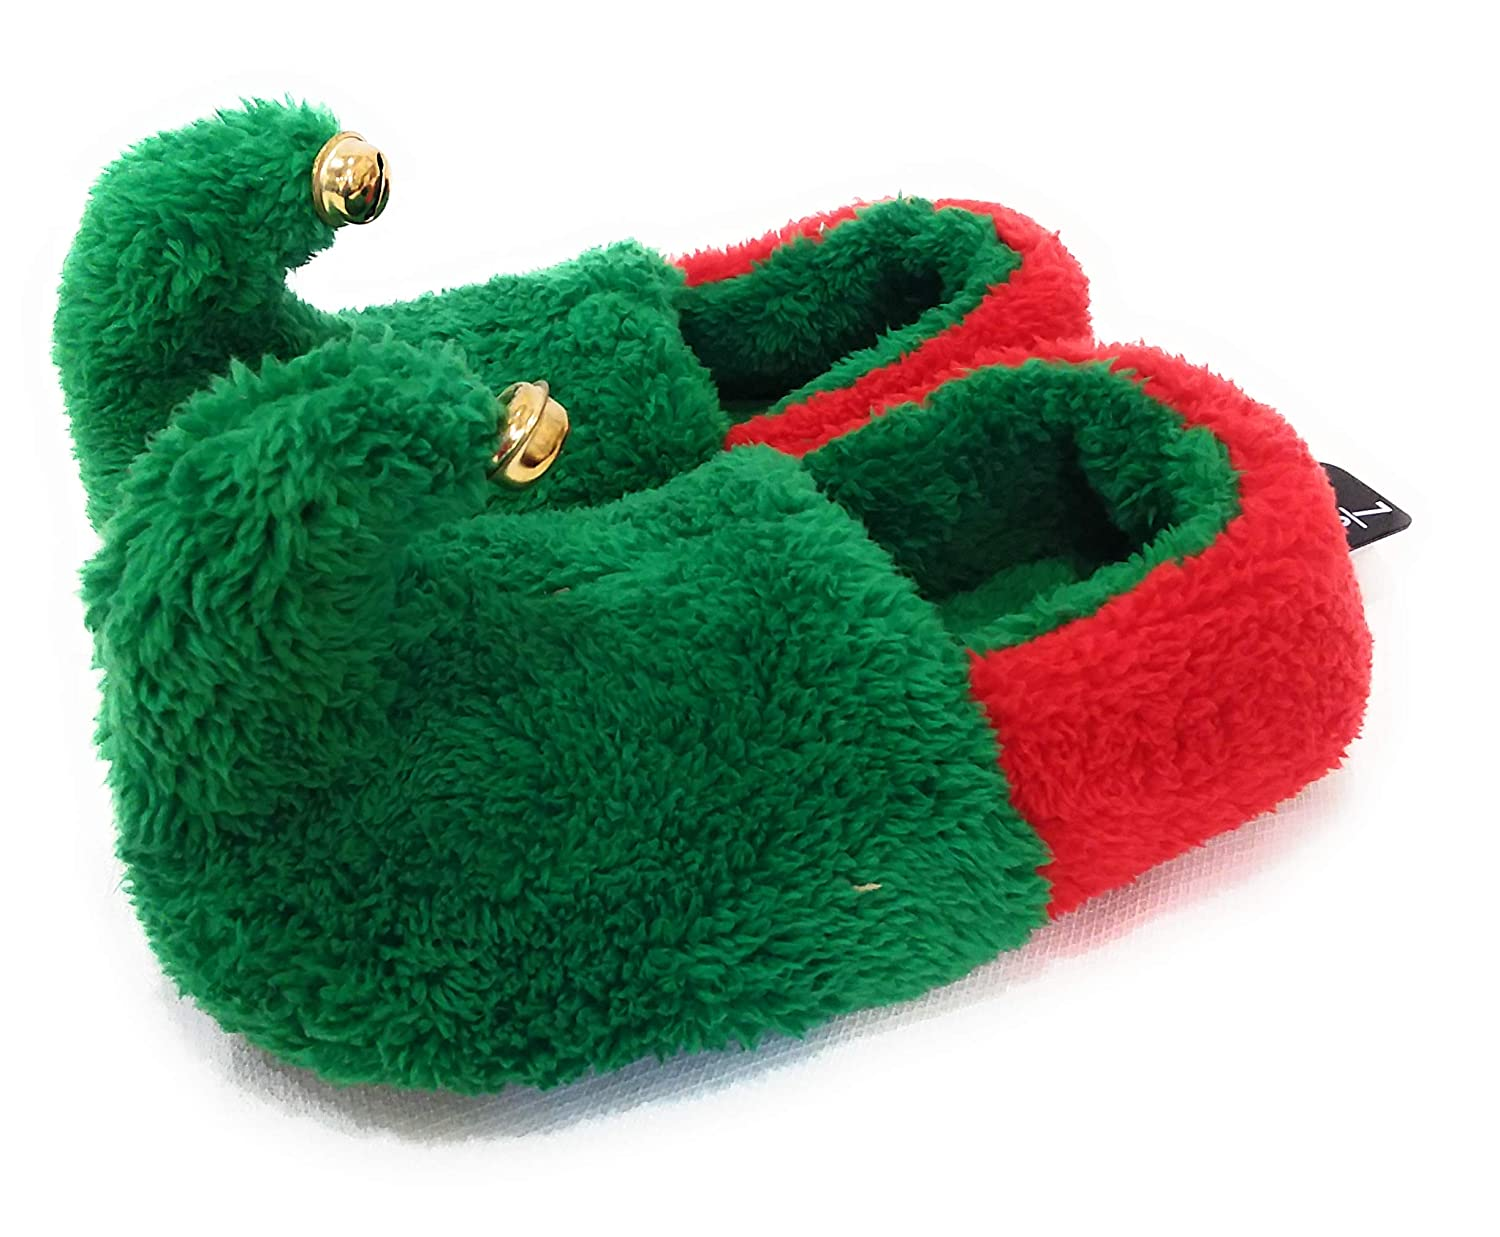 2457a4aa87f6 Womens christmas elf slippers green red bells on toes large slippers jpg  1500x1237 Christmas elf slippers